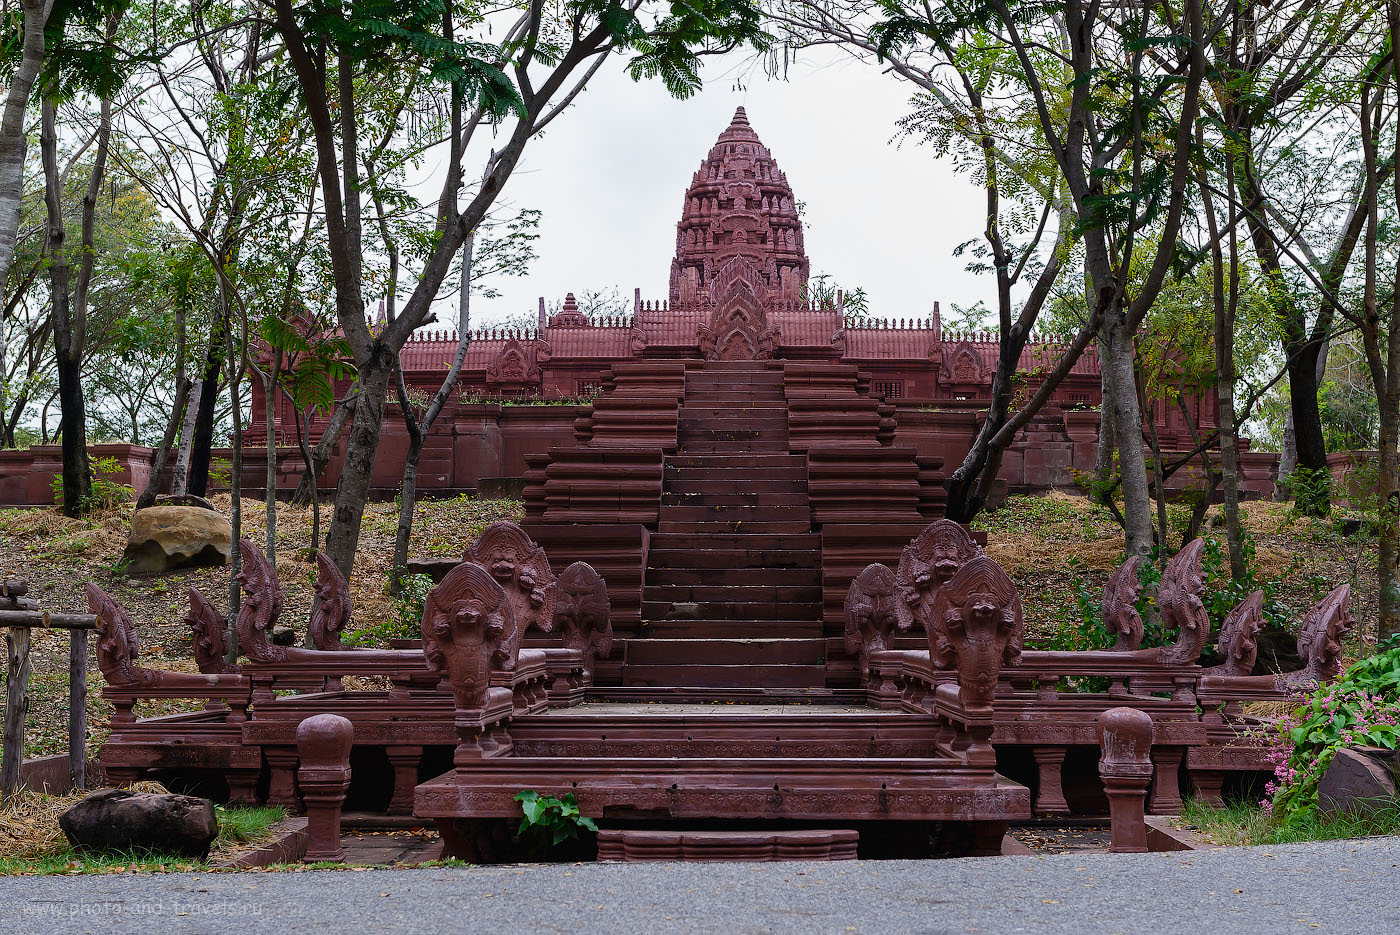 Фотография 5. The Phanom Rung Sanctuary, кхмерский храмовый комплекс в провинции Бурирам на востоке Таиланда. Макет в парке Муанг Боран в Бангкоке. 400, 58, 8.0, 1/125